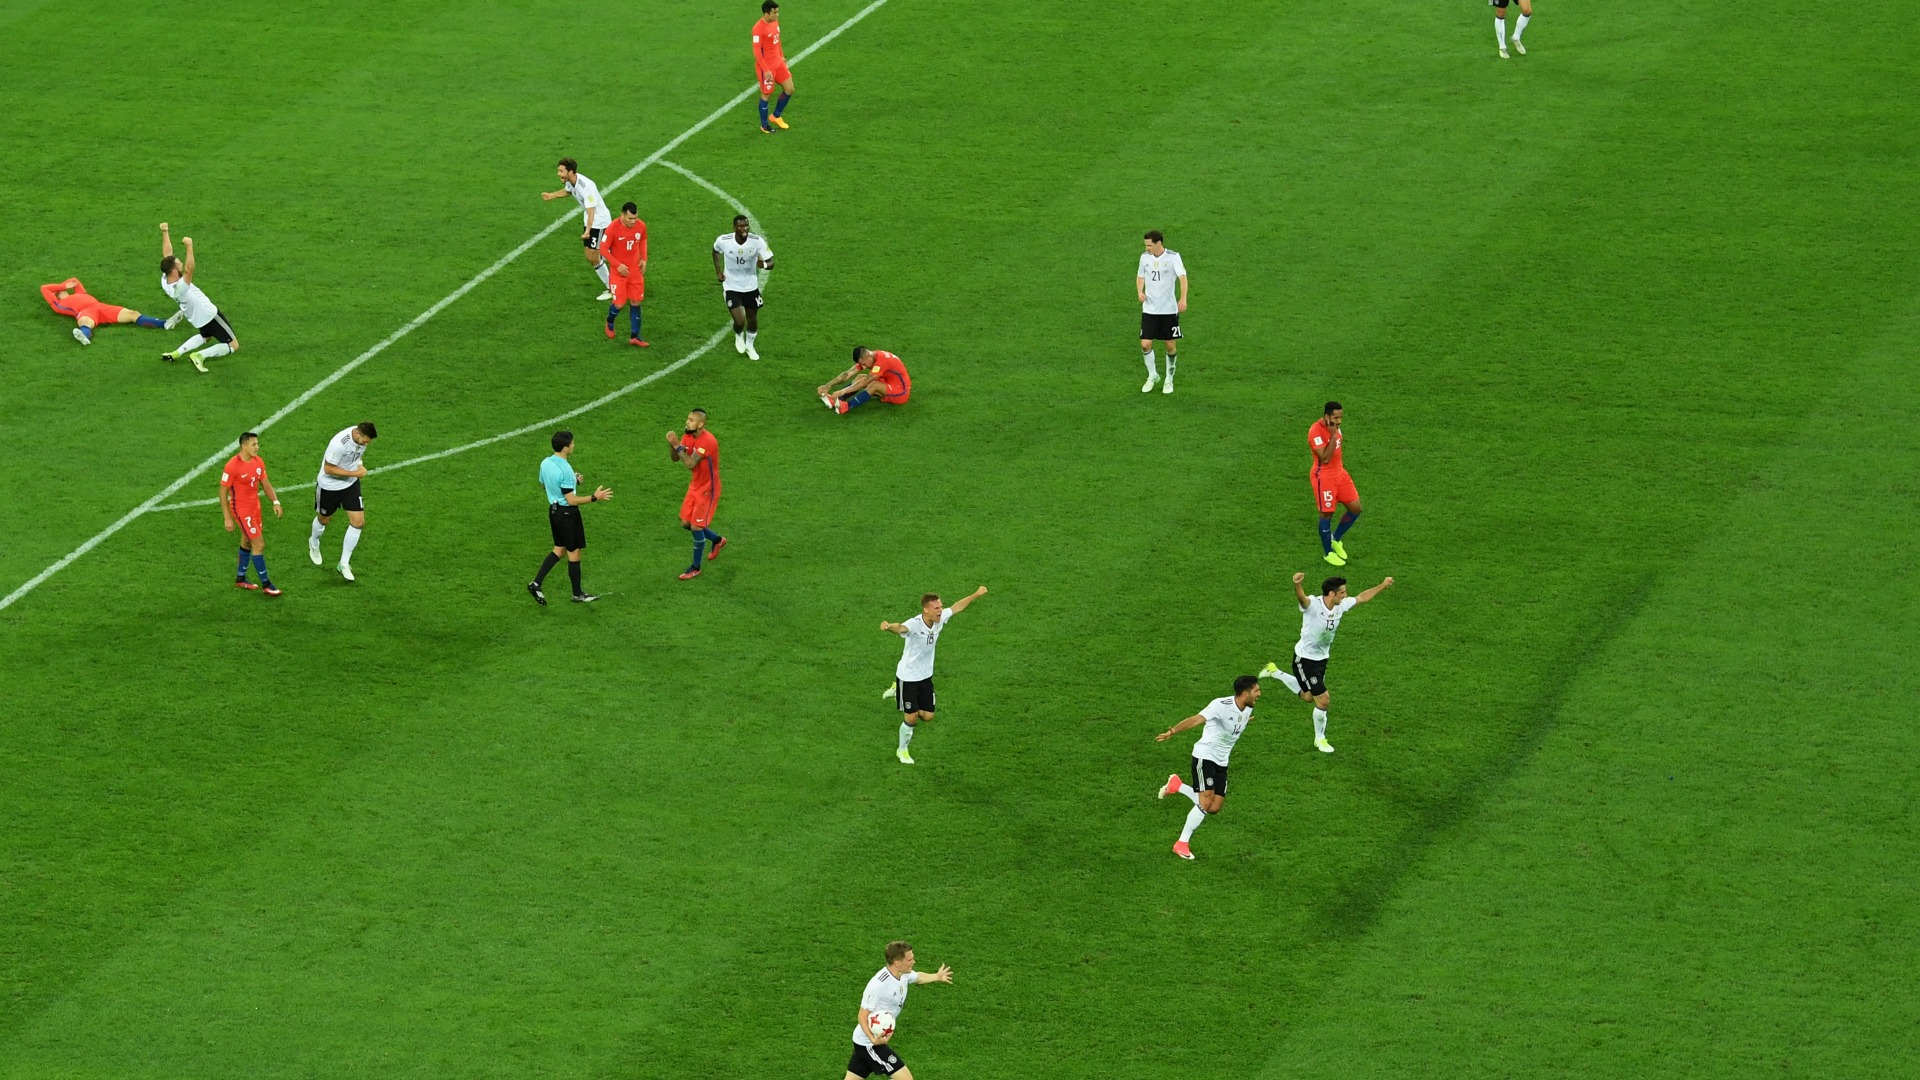 Chile Germany minute 90 020717 Confederations Cup